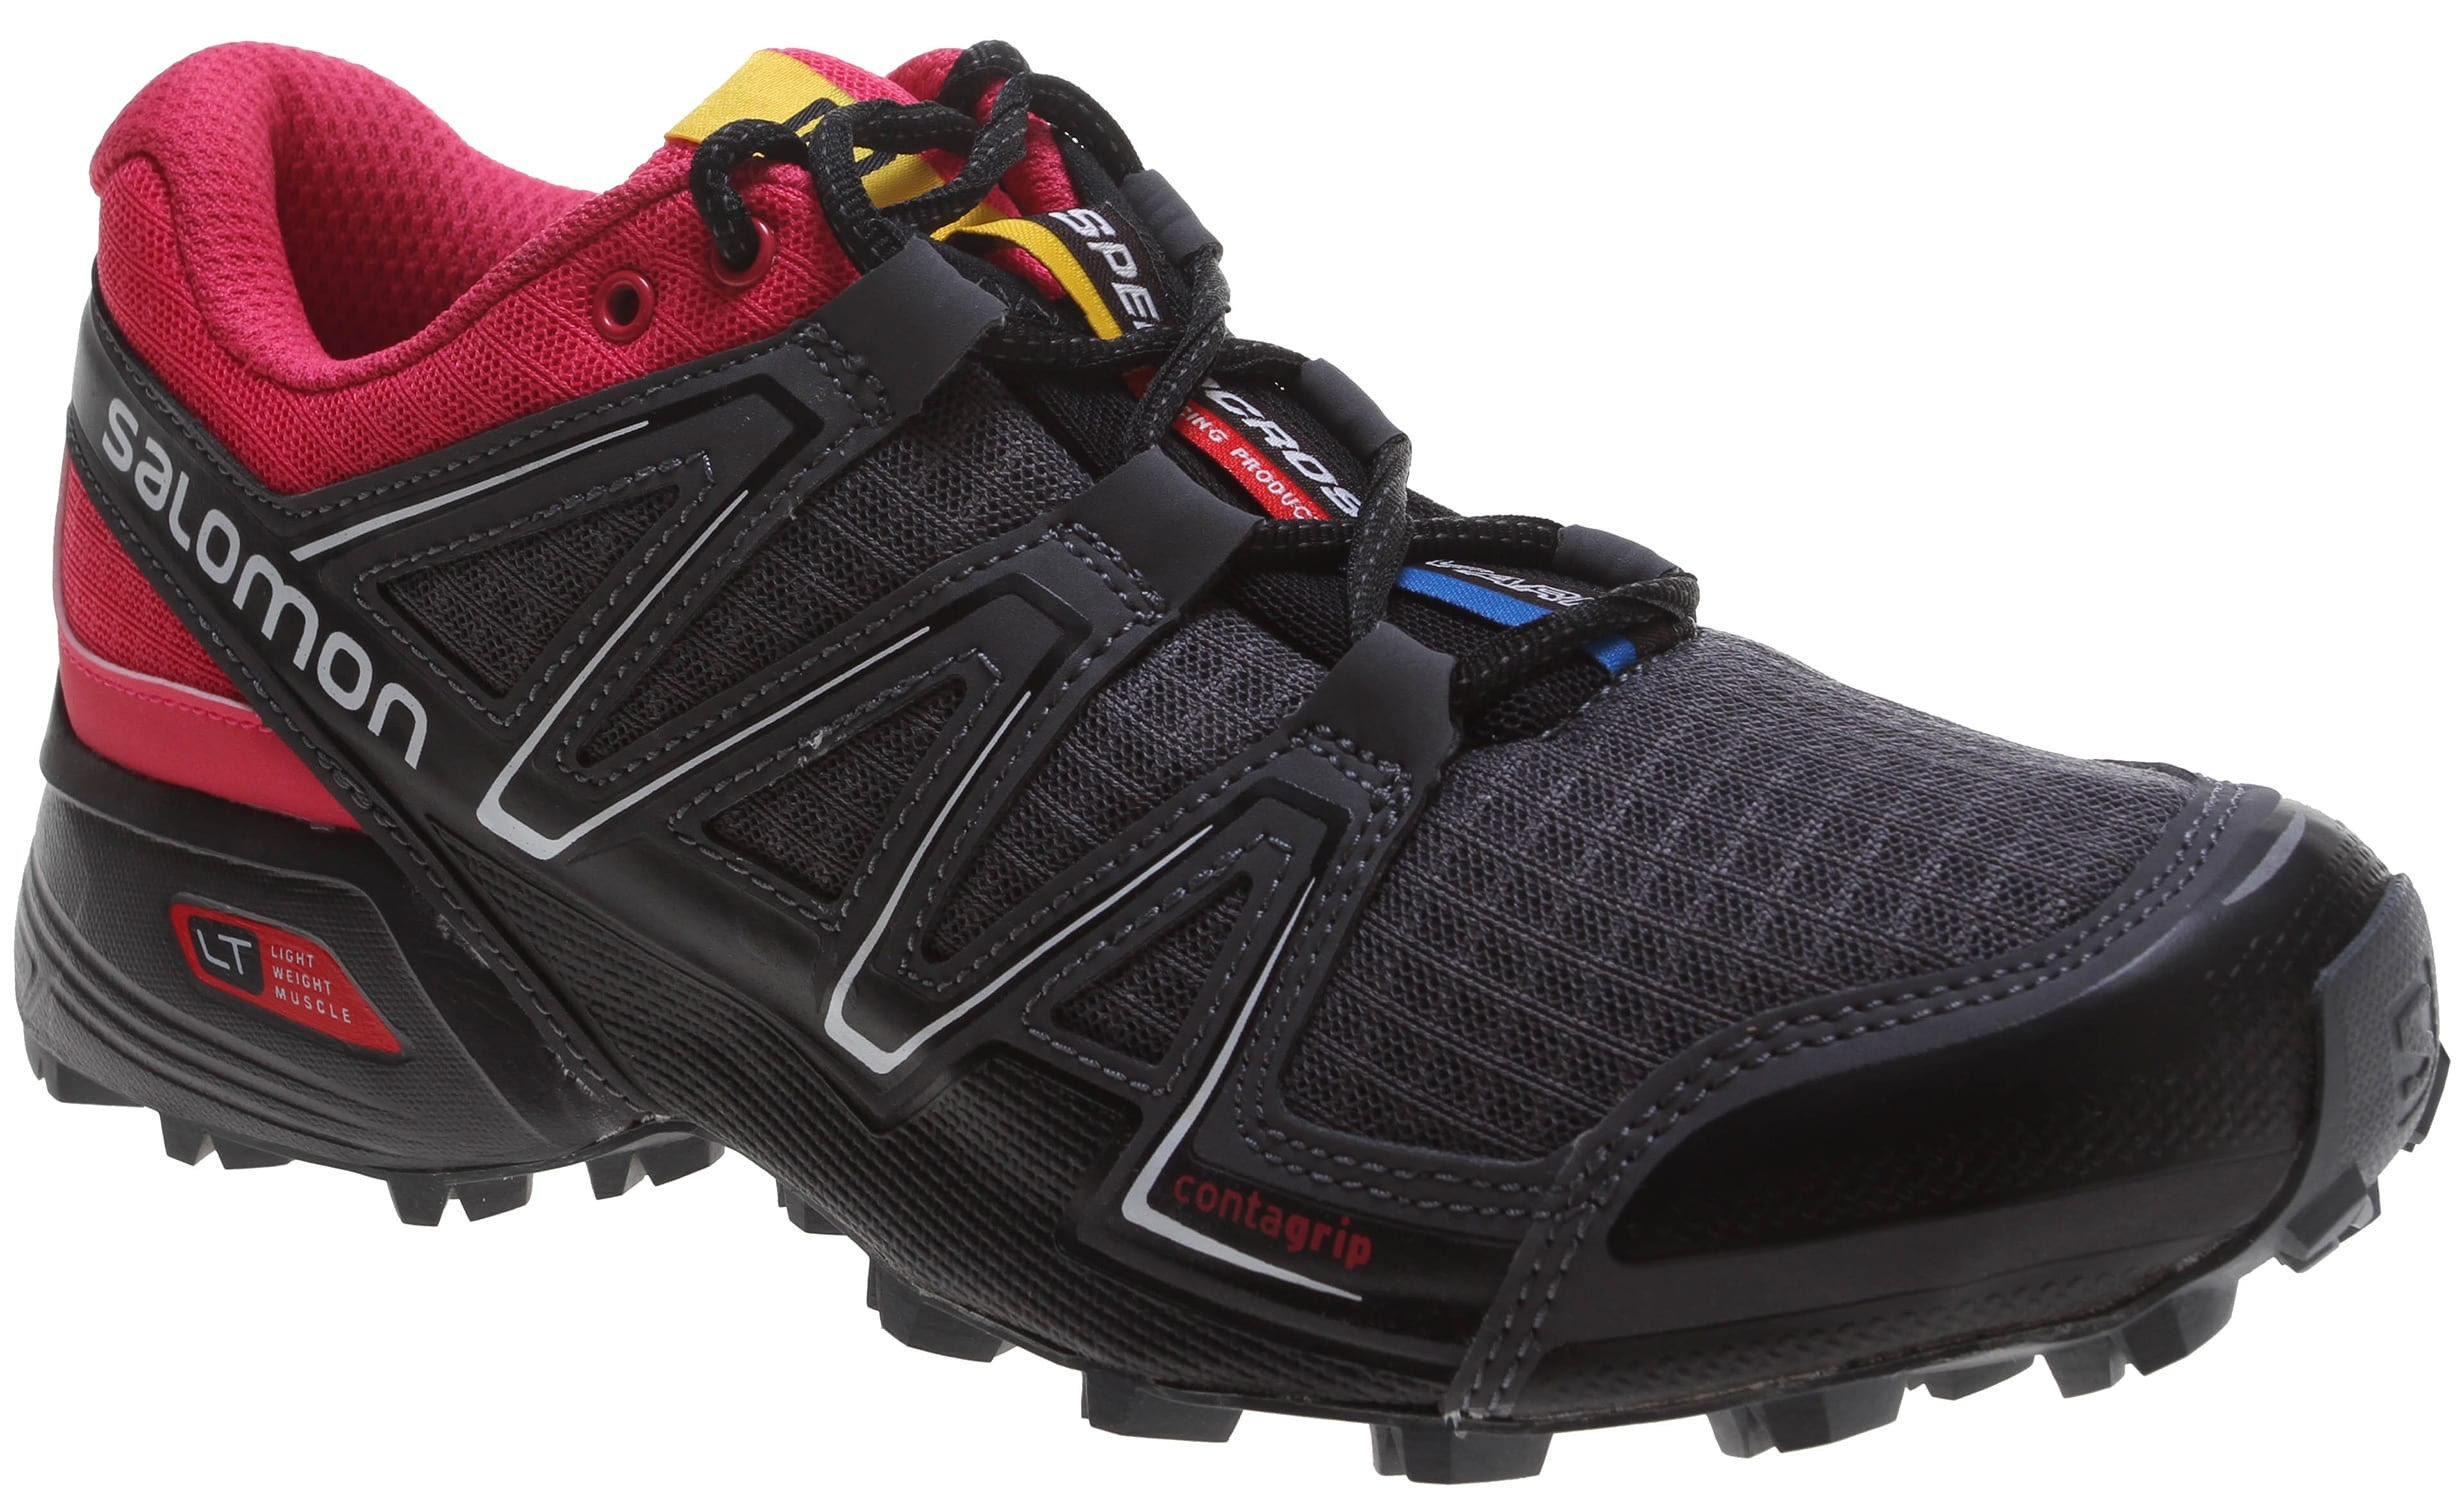 ddfd55529b4d Salomon Speedcross Vario Trail Running Shoes - thumbnail 2